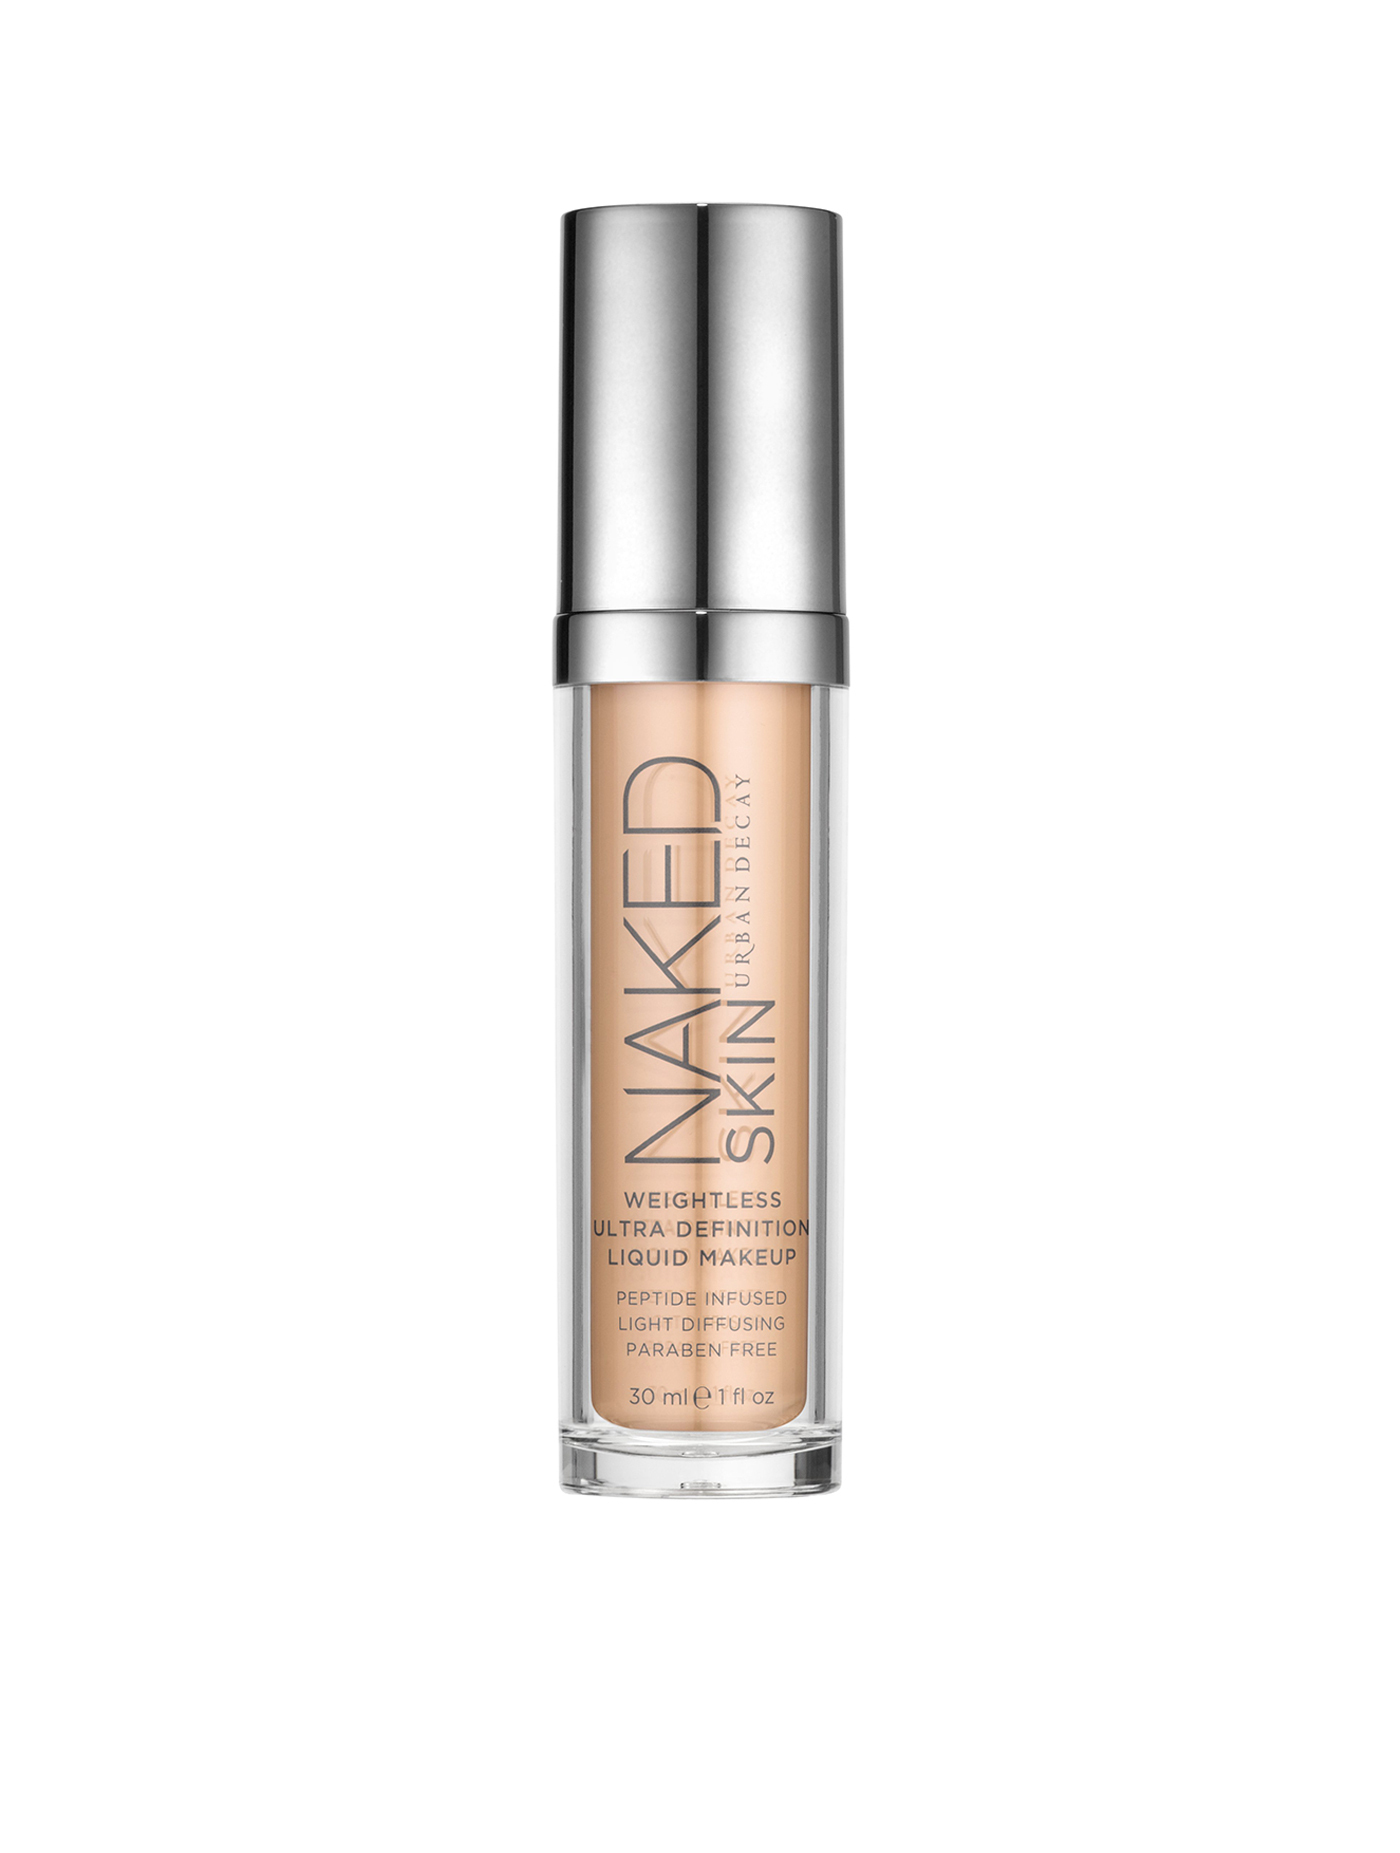 URBAN DECAY NAKED リキッド・ ファンデーション #5.0 送料無料